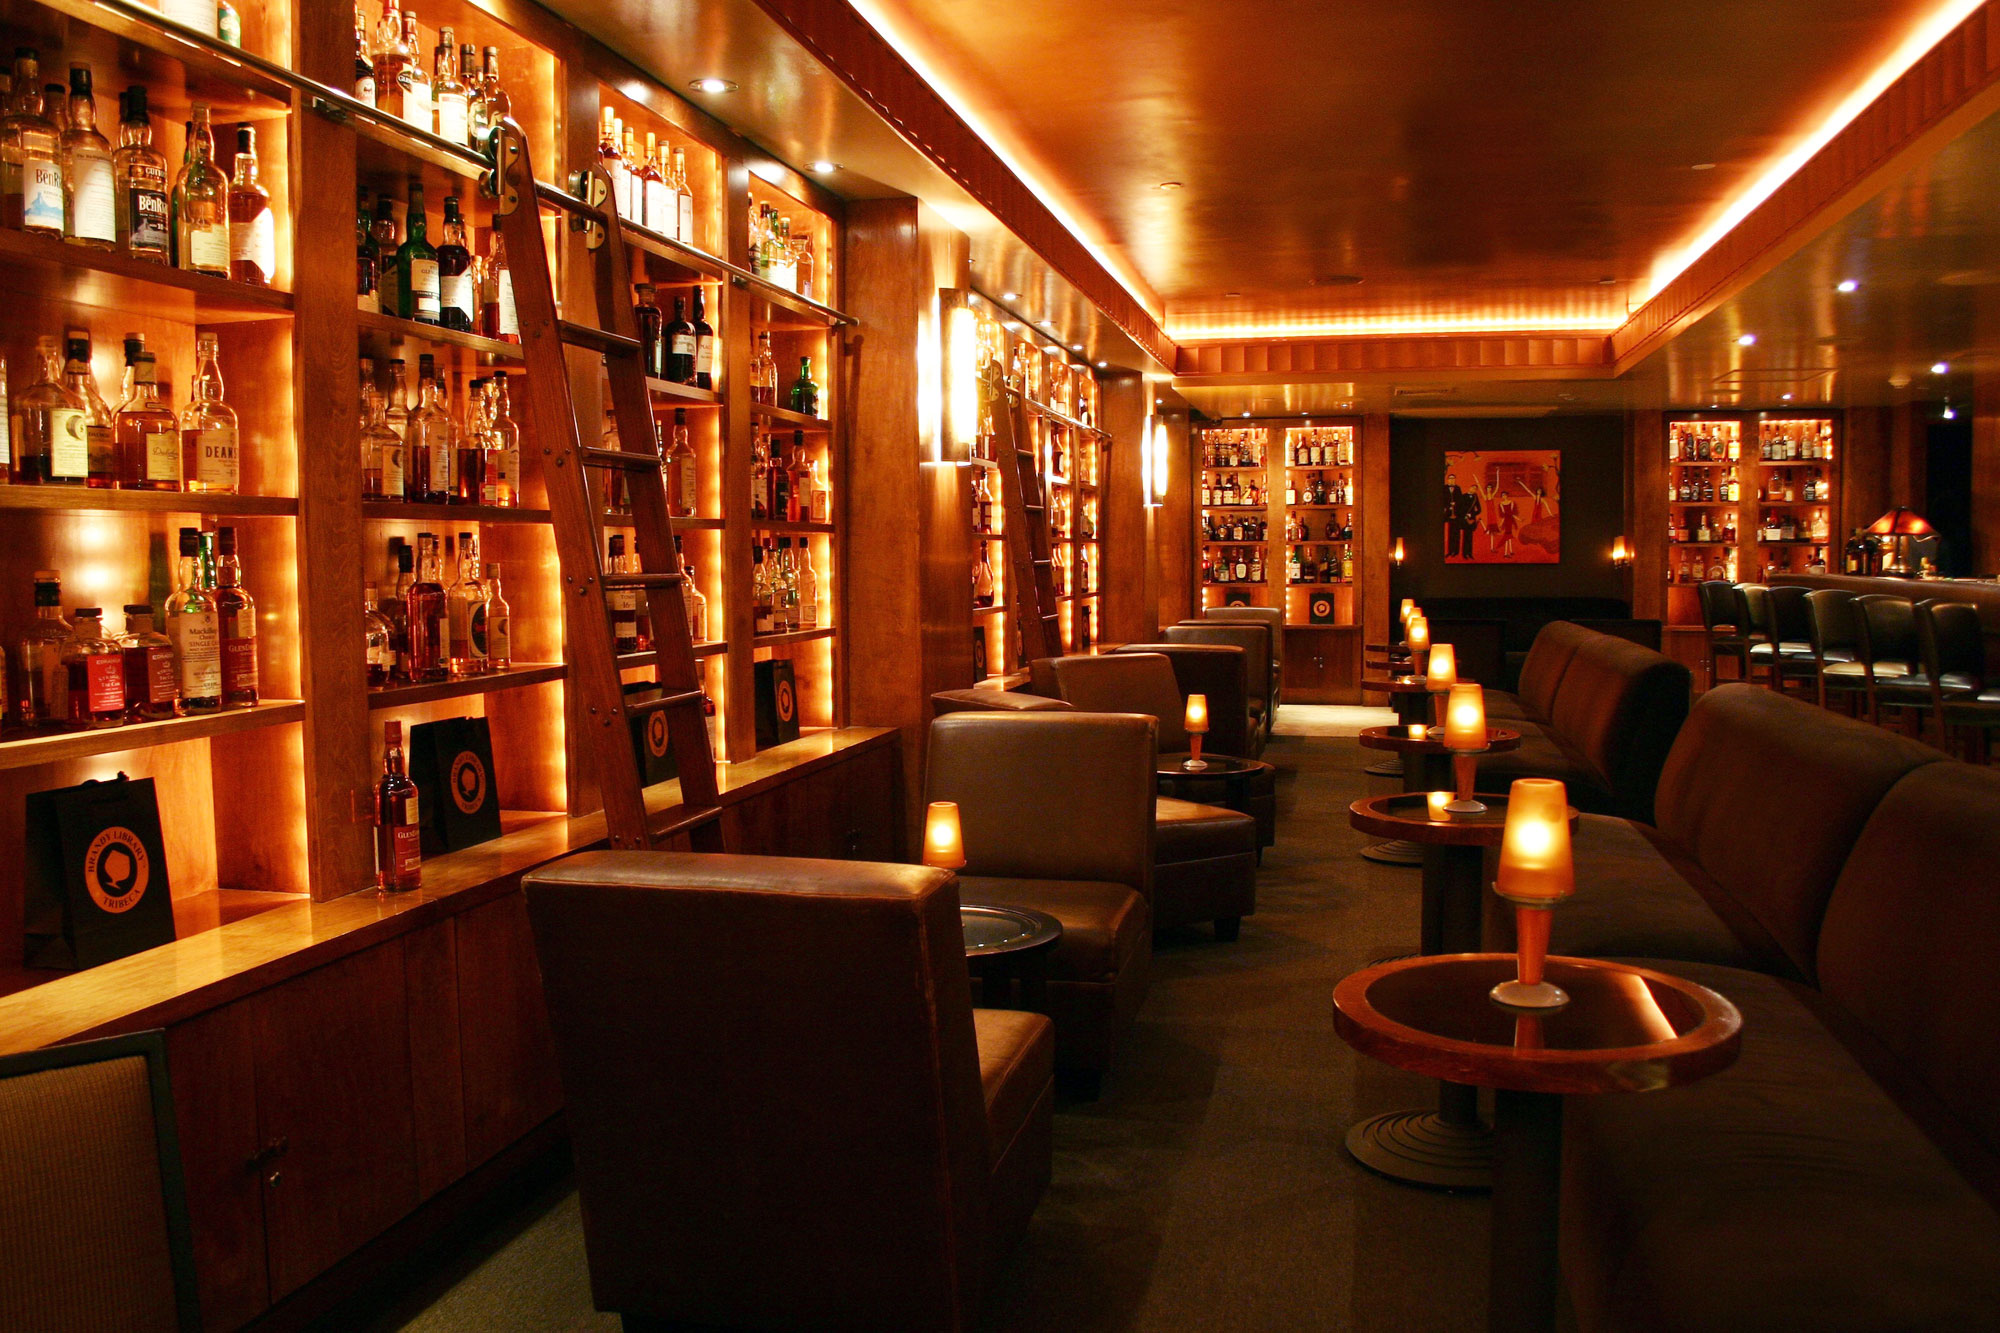 Brandy Library - One of the Best Bars in Tribeca, New York